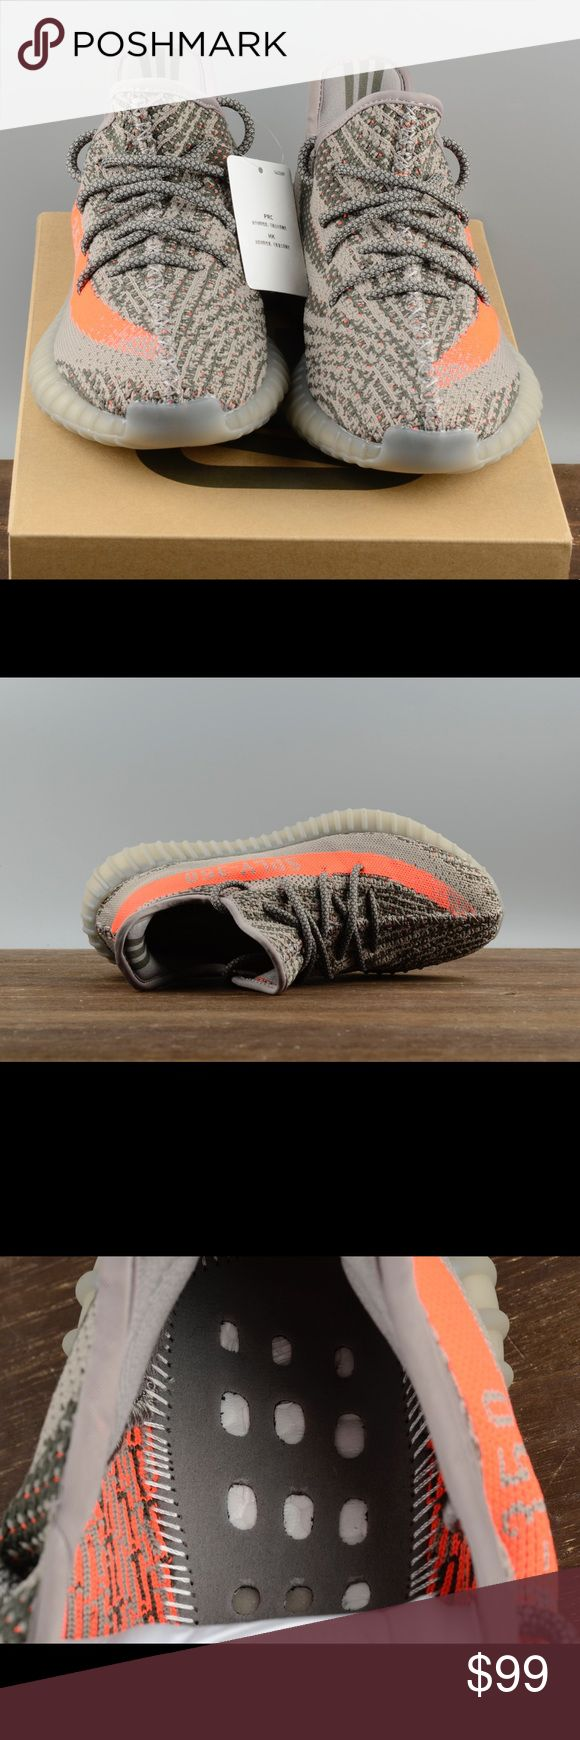 Adidas Yeezy Boost 350 V2 fashion sneaker shoes New, comes with box and receipt.     ————————————————— Men mens womens women nike vans converse adidas puma roshe air max athletic sports white pink black purple evening heel high heeled flat feet leather an